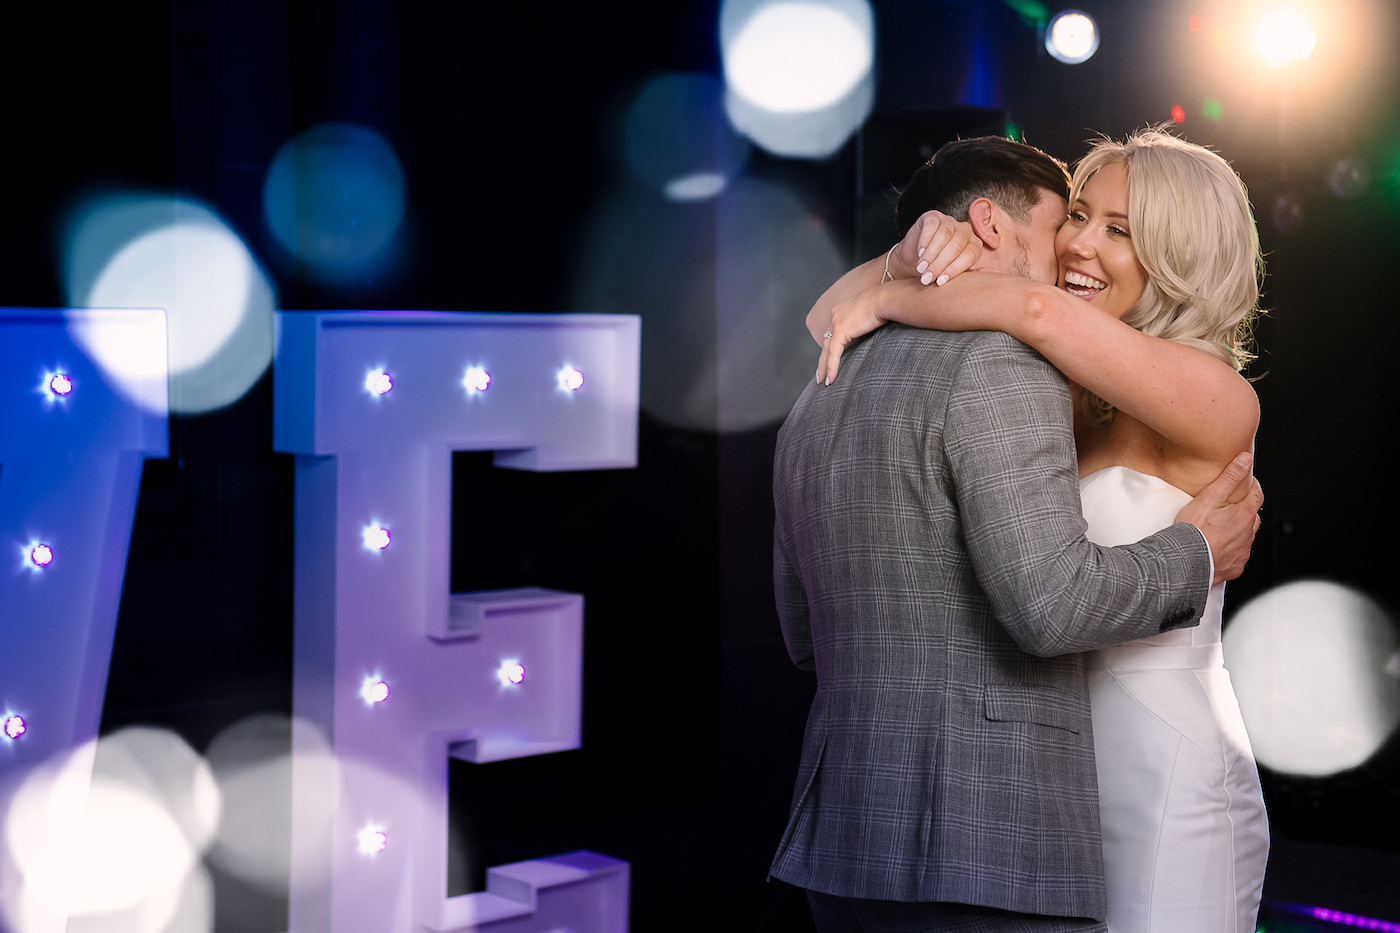 Bride and groom dancing on the dance floor in a tight embrace